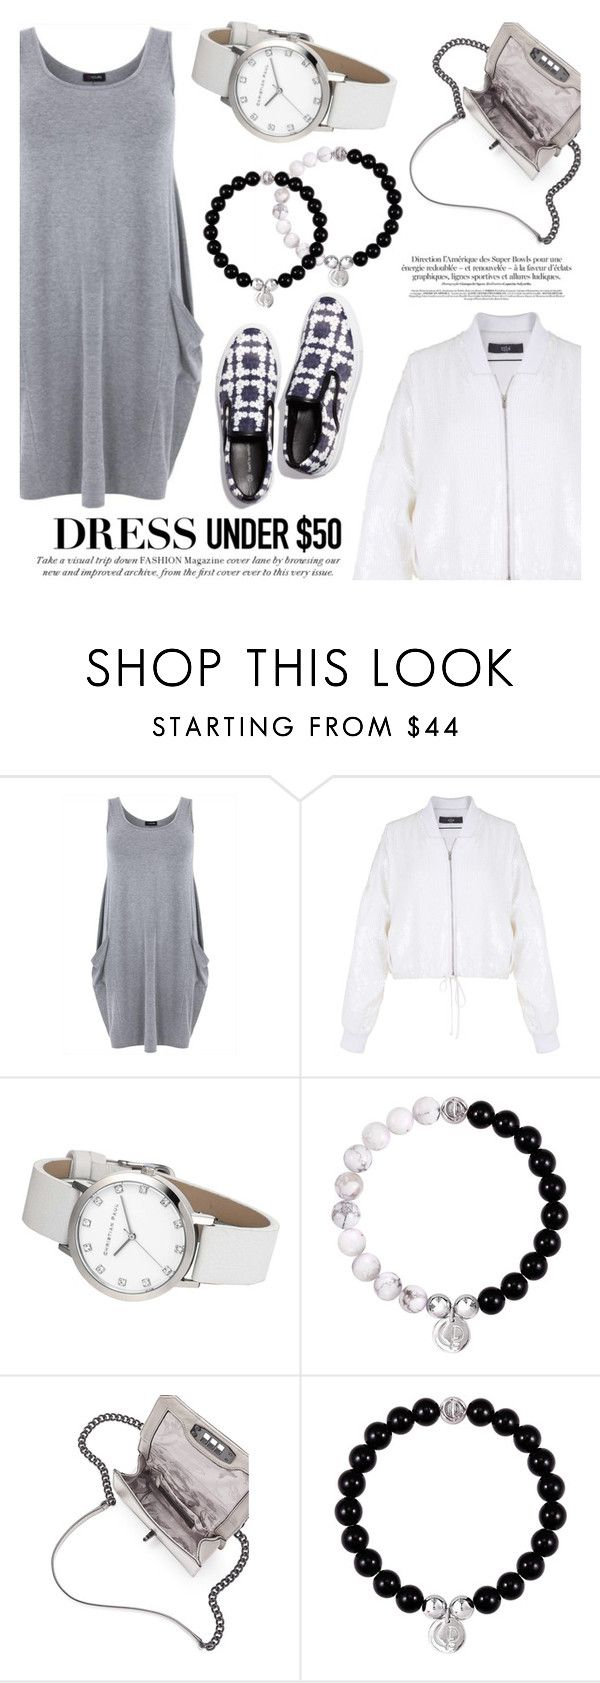 """""""Dress Under $50"""" by christianpaul ❤ liked on Polyvore featuring TIBI, Rebecca Minkoff, contestentry, Dressunder50 and christianpaul"""